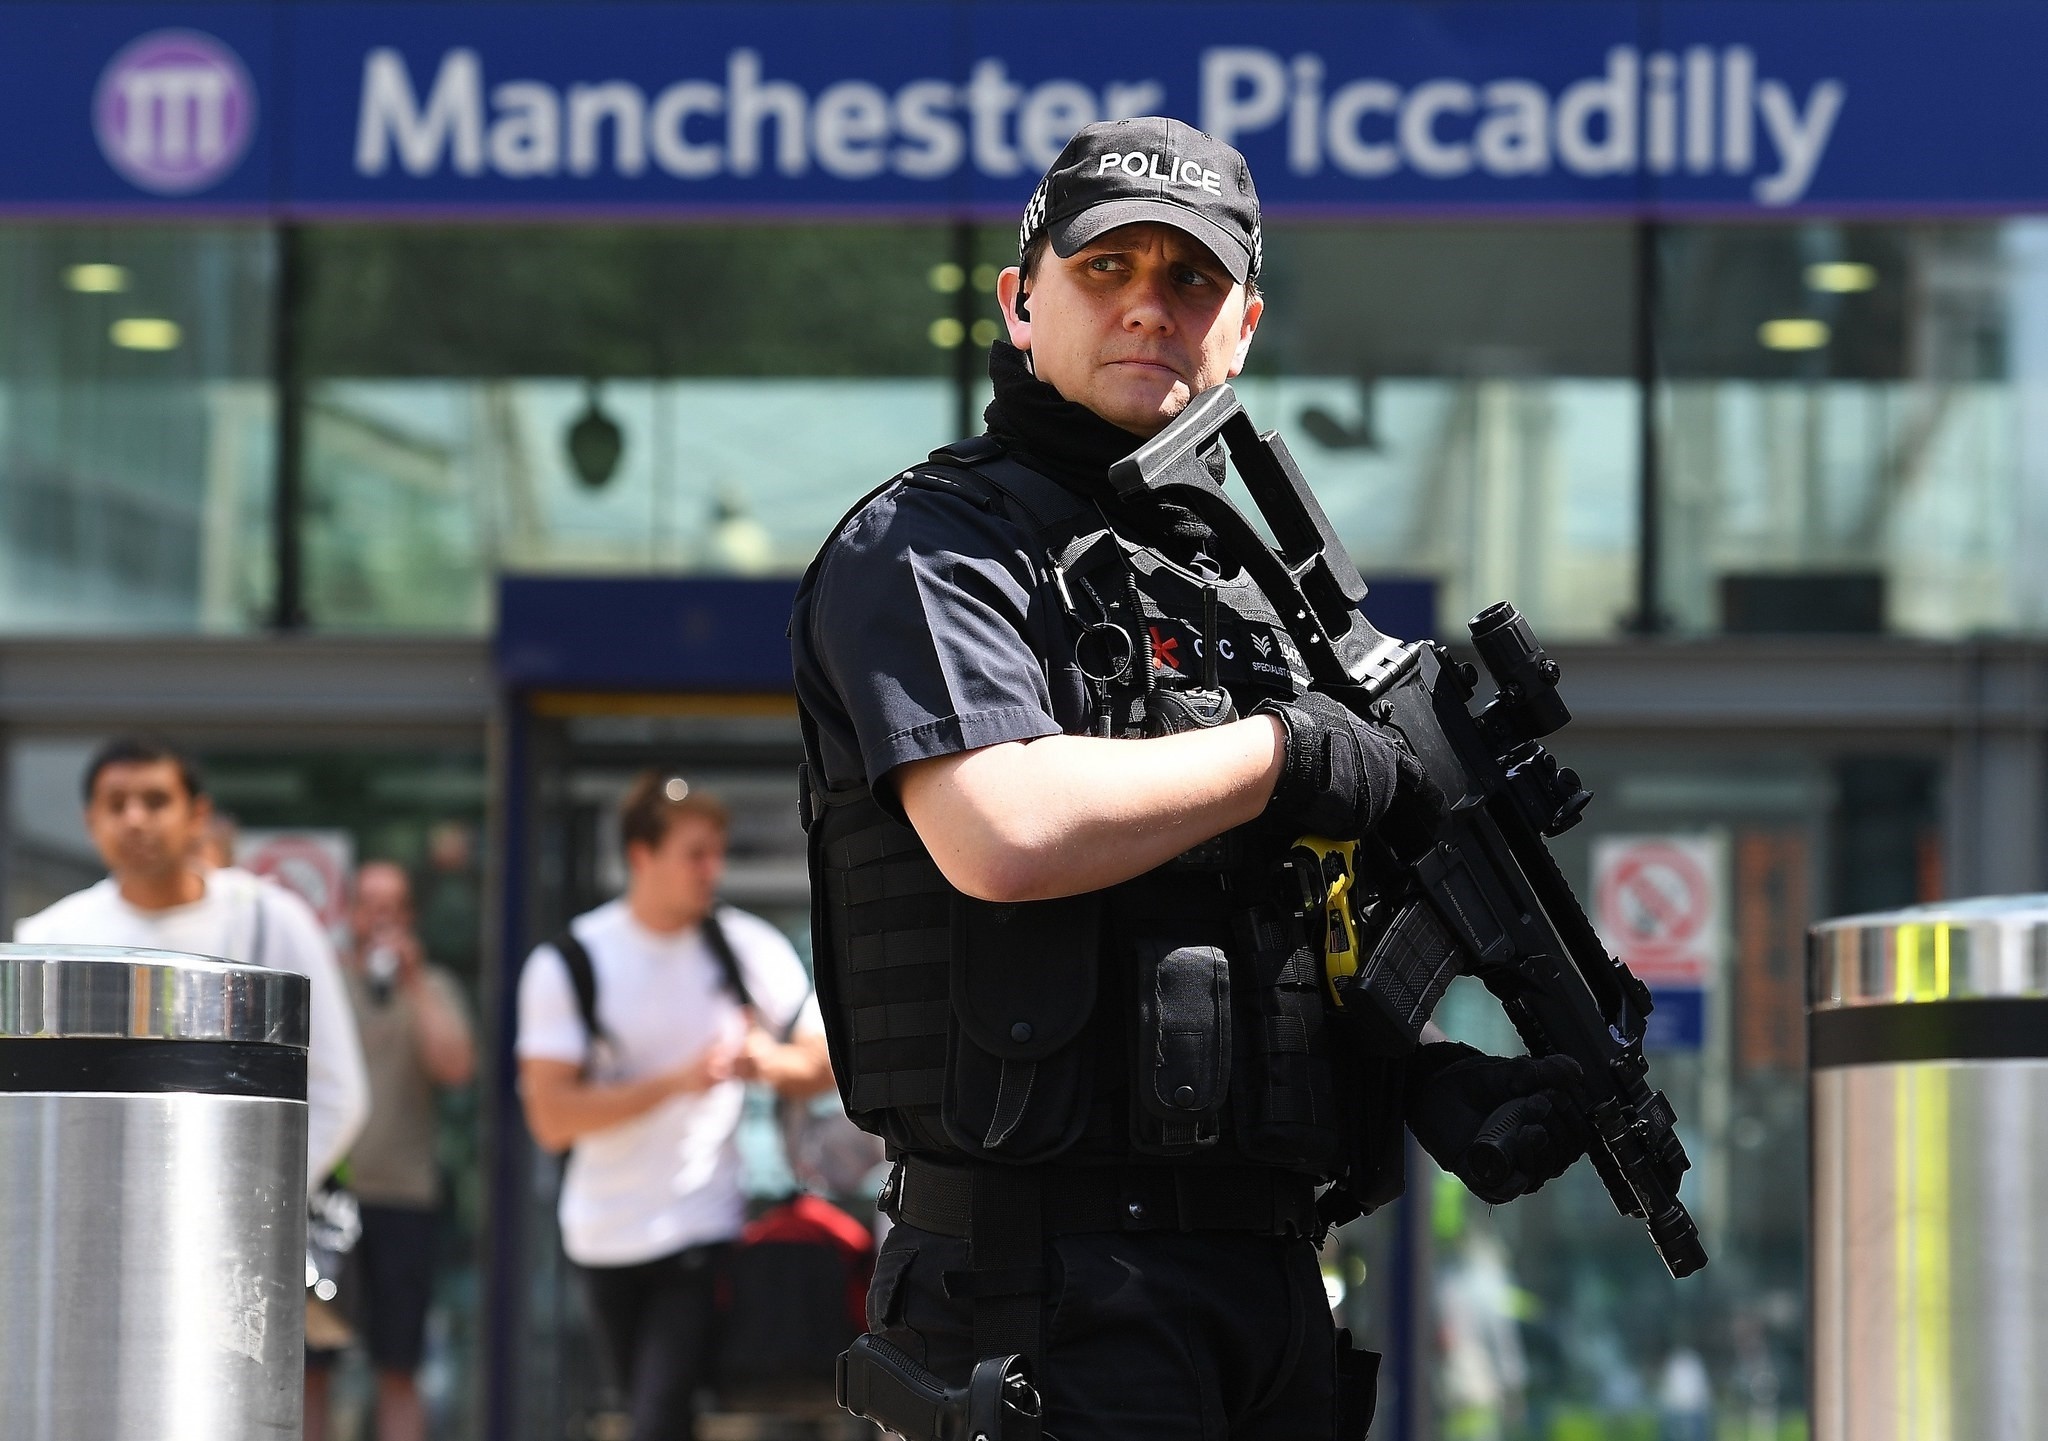 Armed police on patrol in Manchester, Britain, 23 May 2017 (EPA Photo)